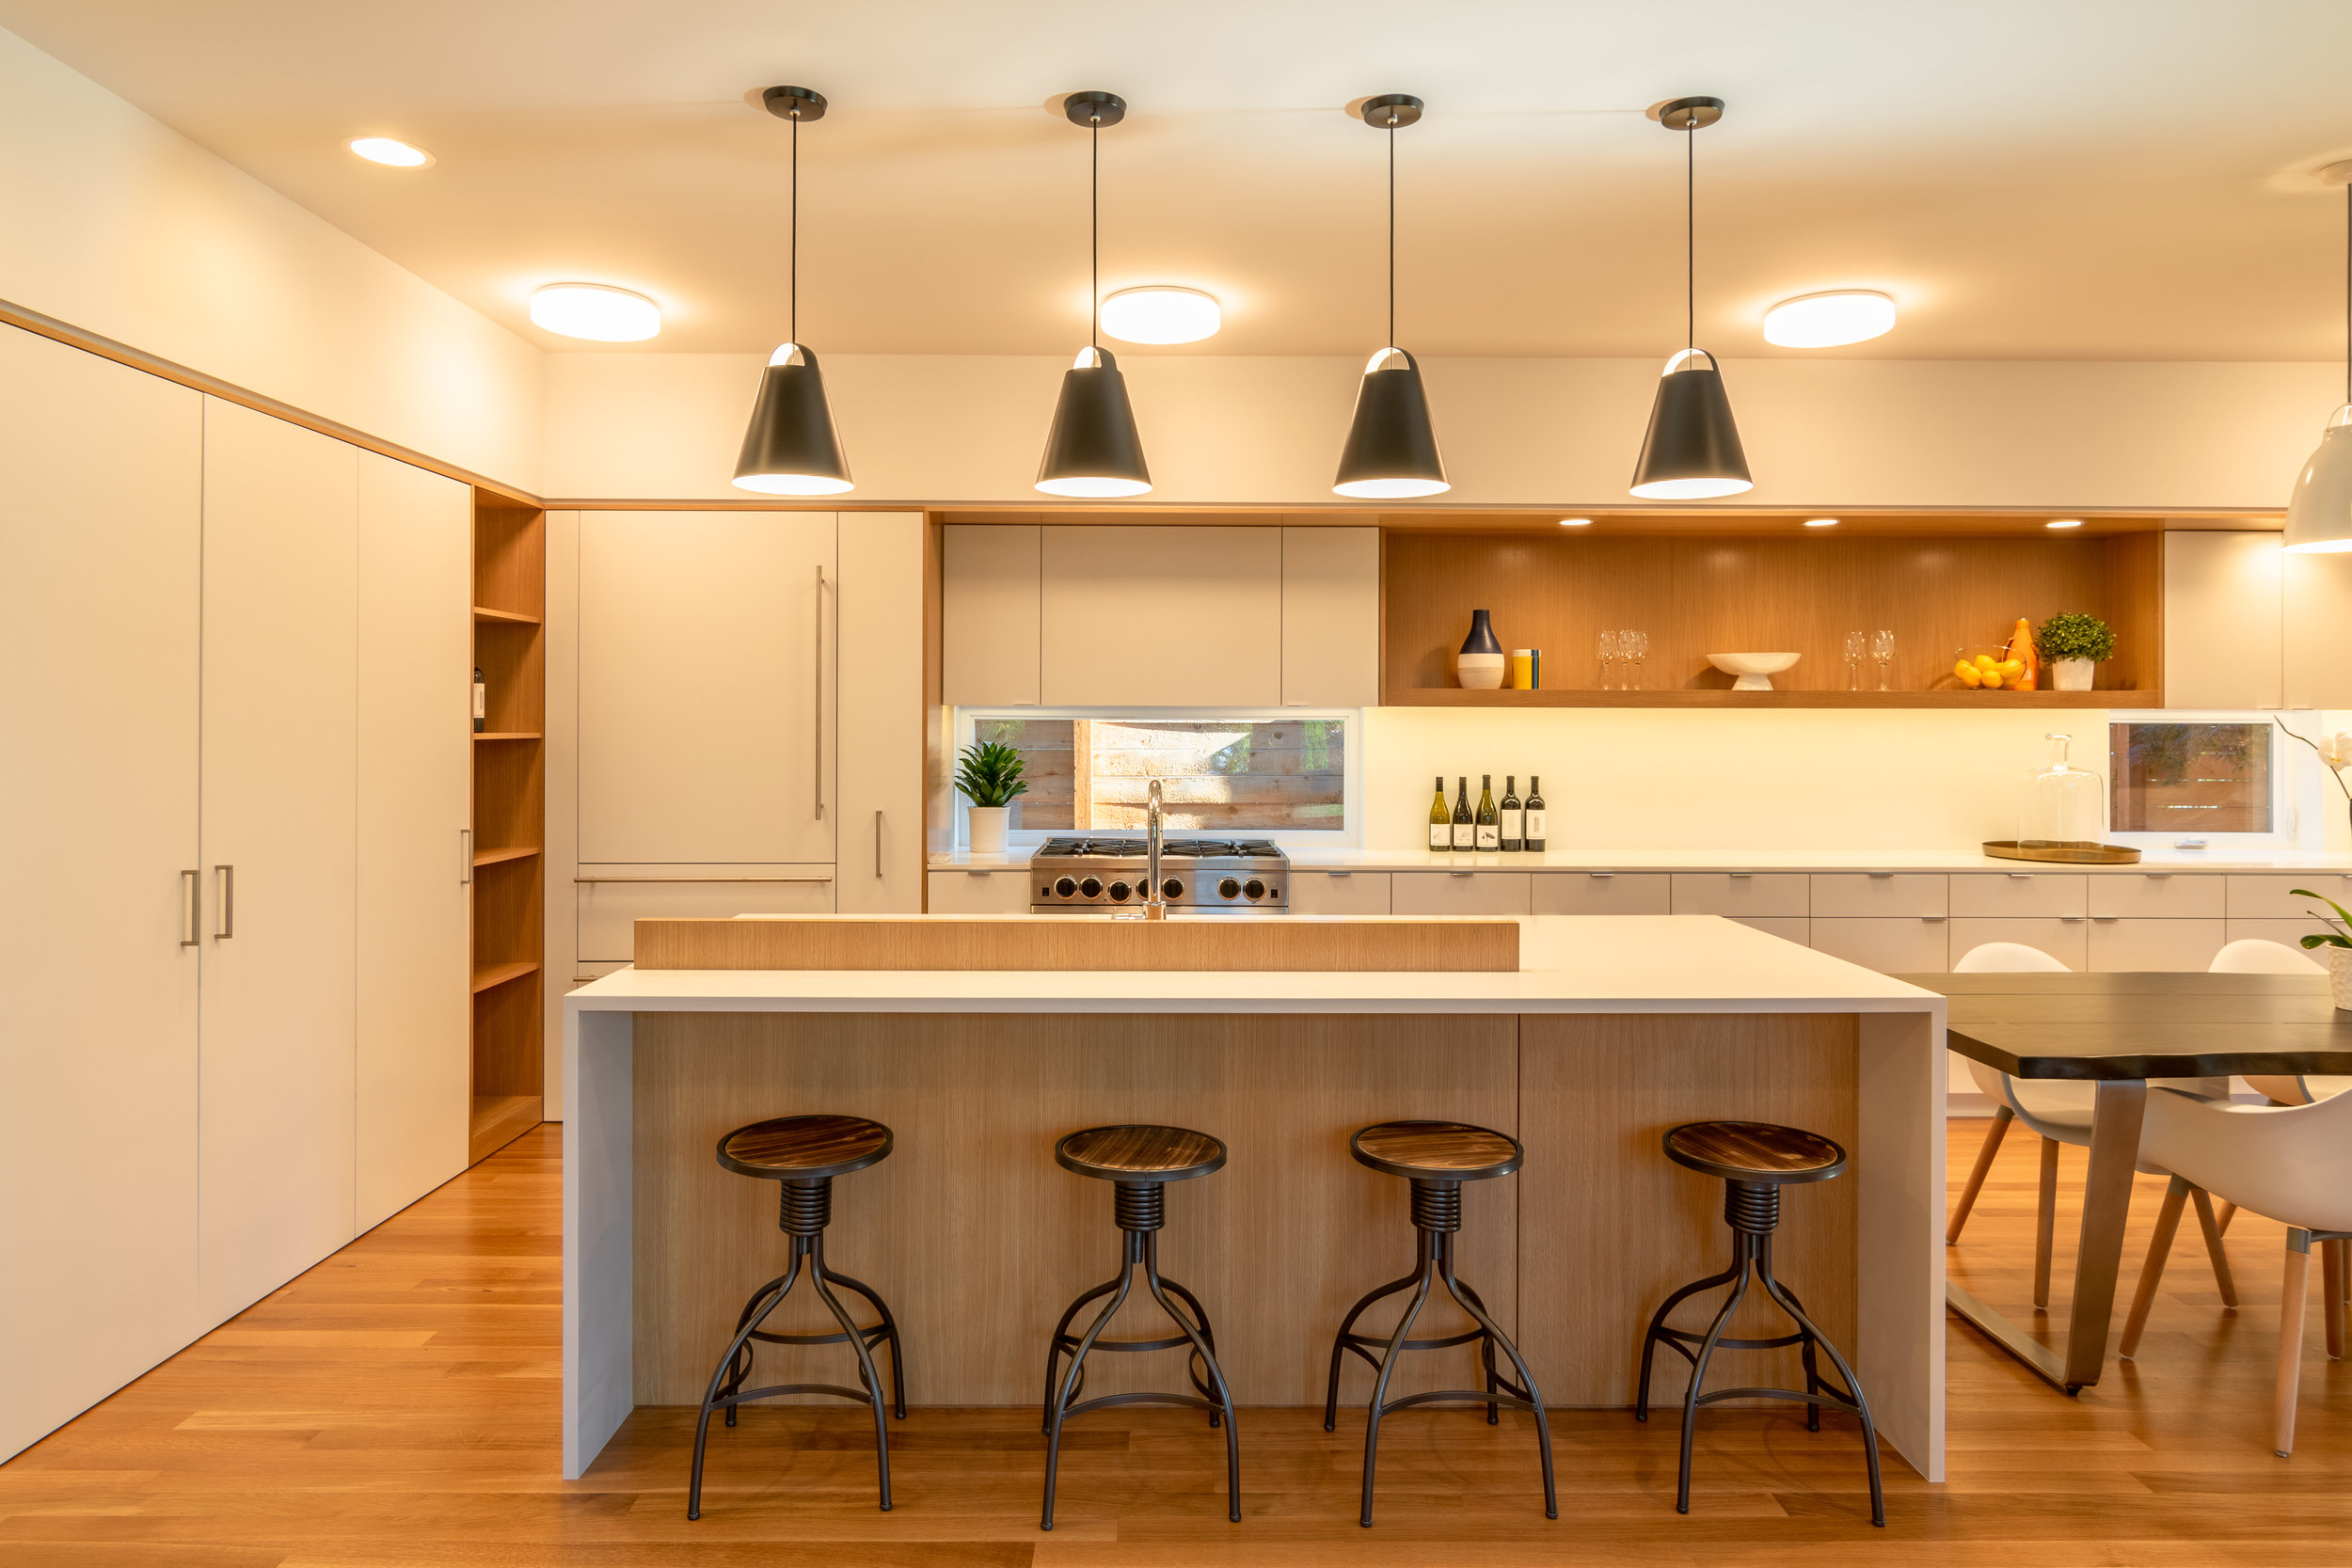 Garden House Kitchen Island and Pantry